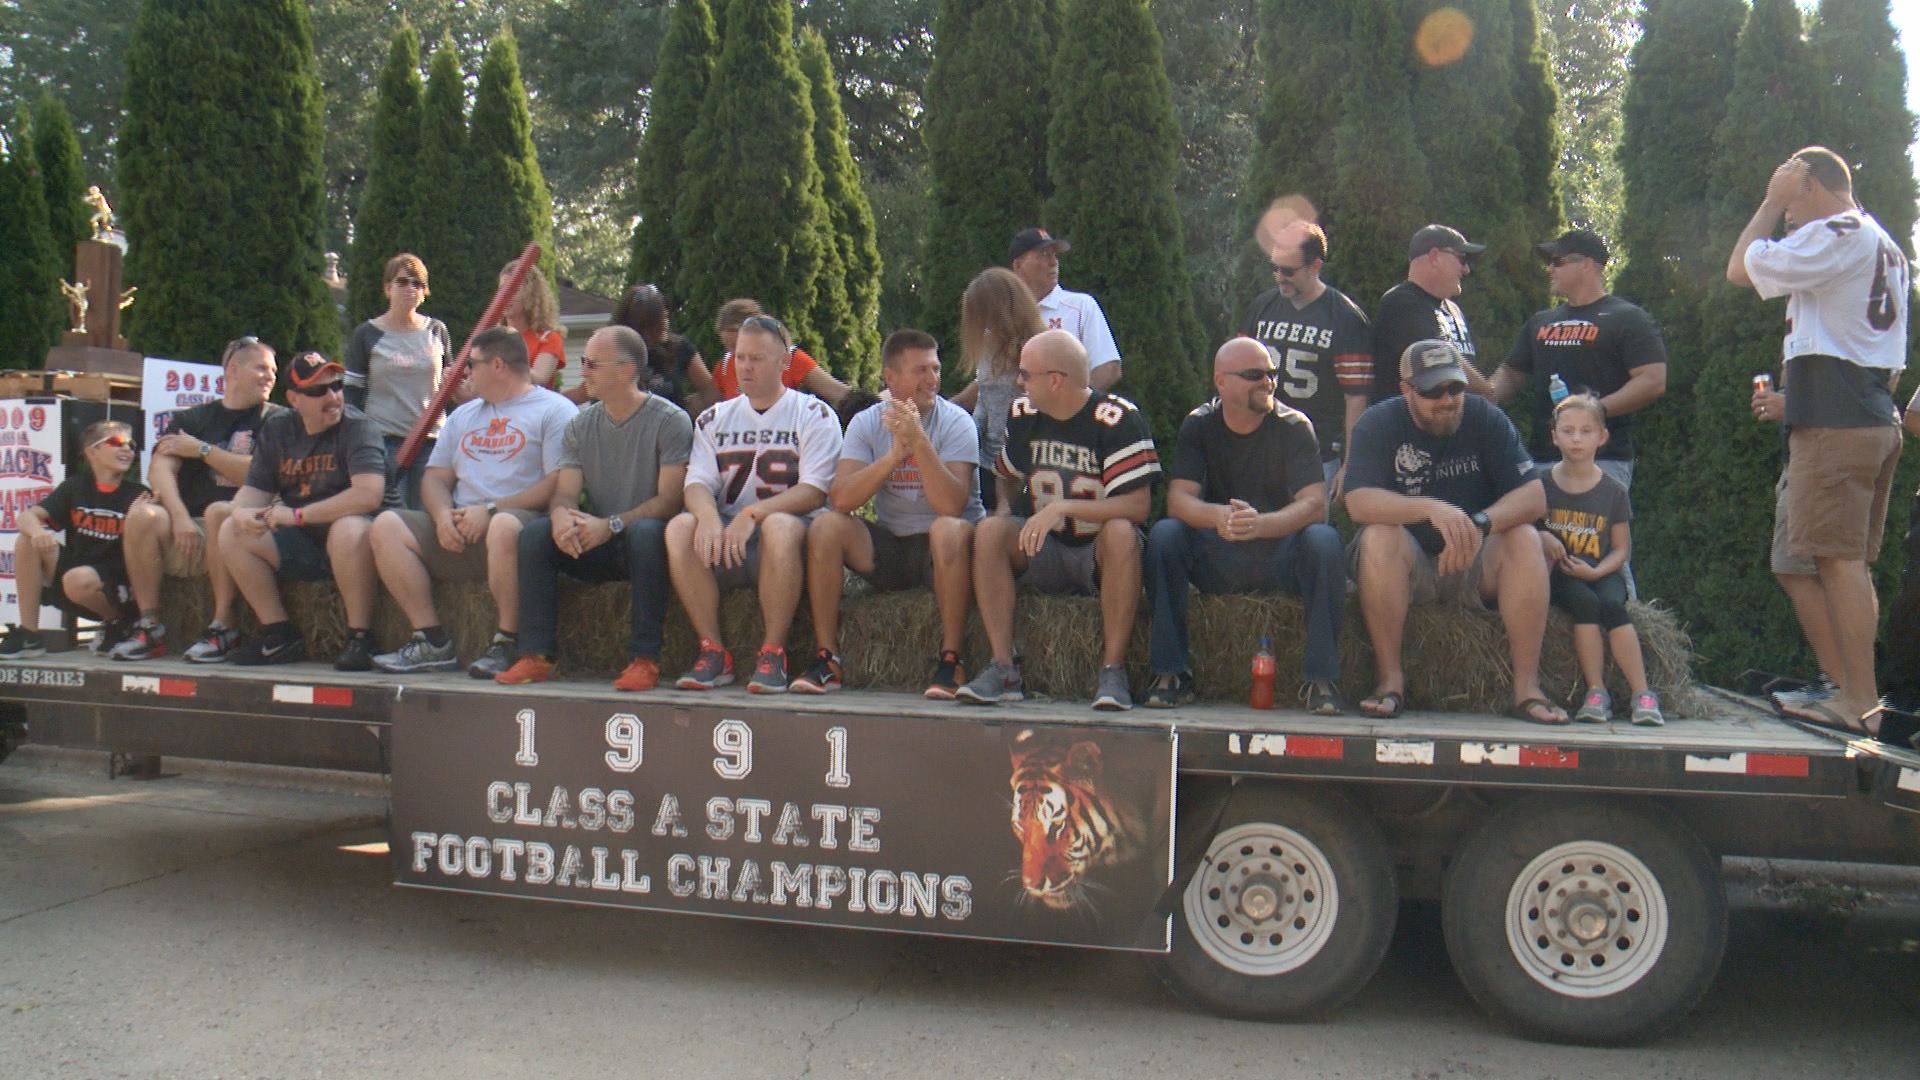 Madrid's State Champiojn Football and Track teams road a float to honor the late coach, Randy Hinkel. (Roger Riley WHO-HD)